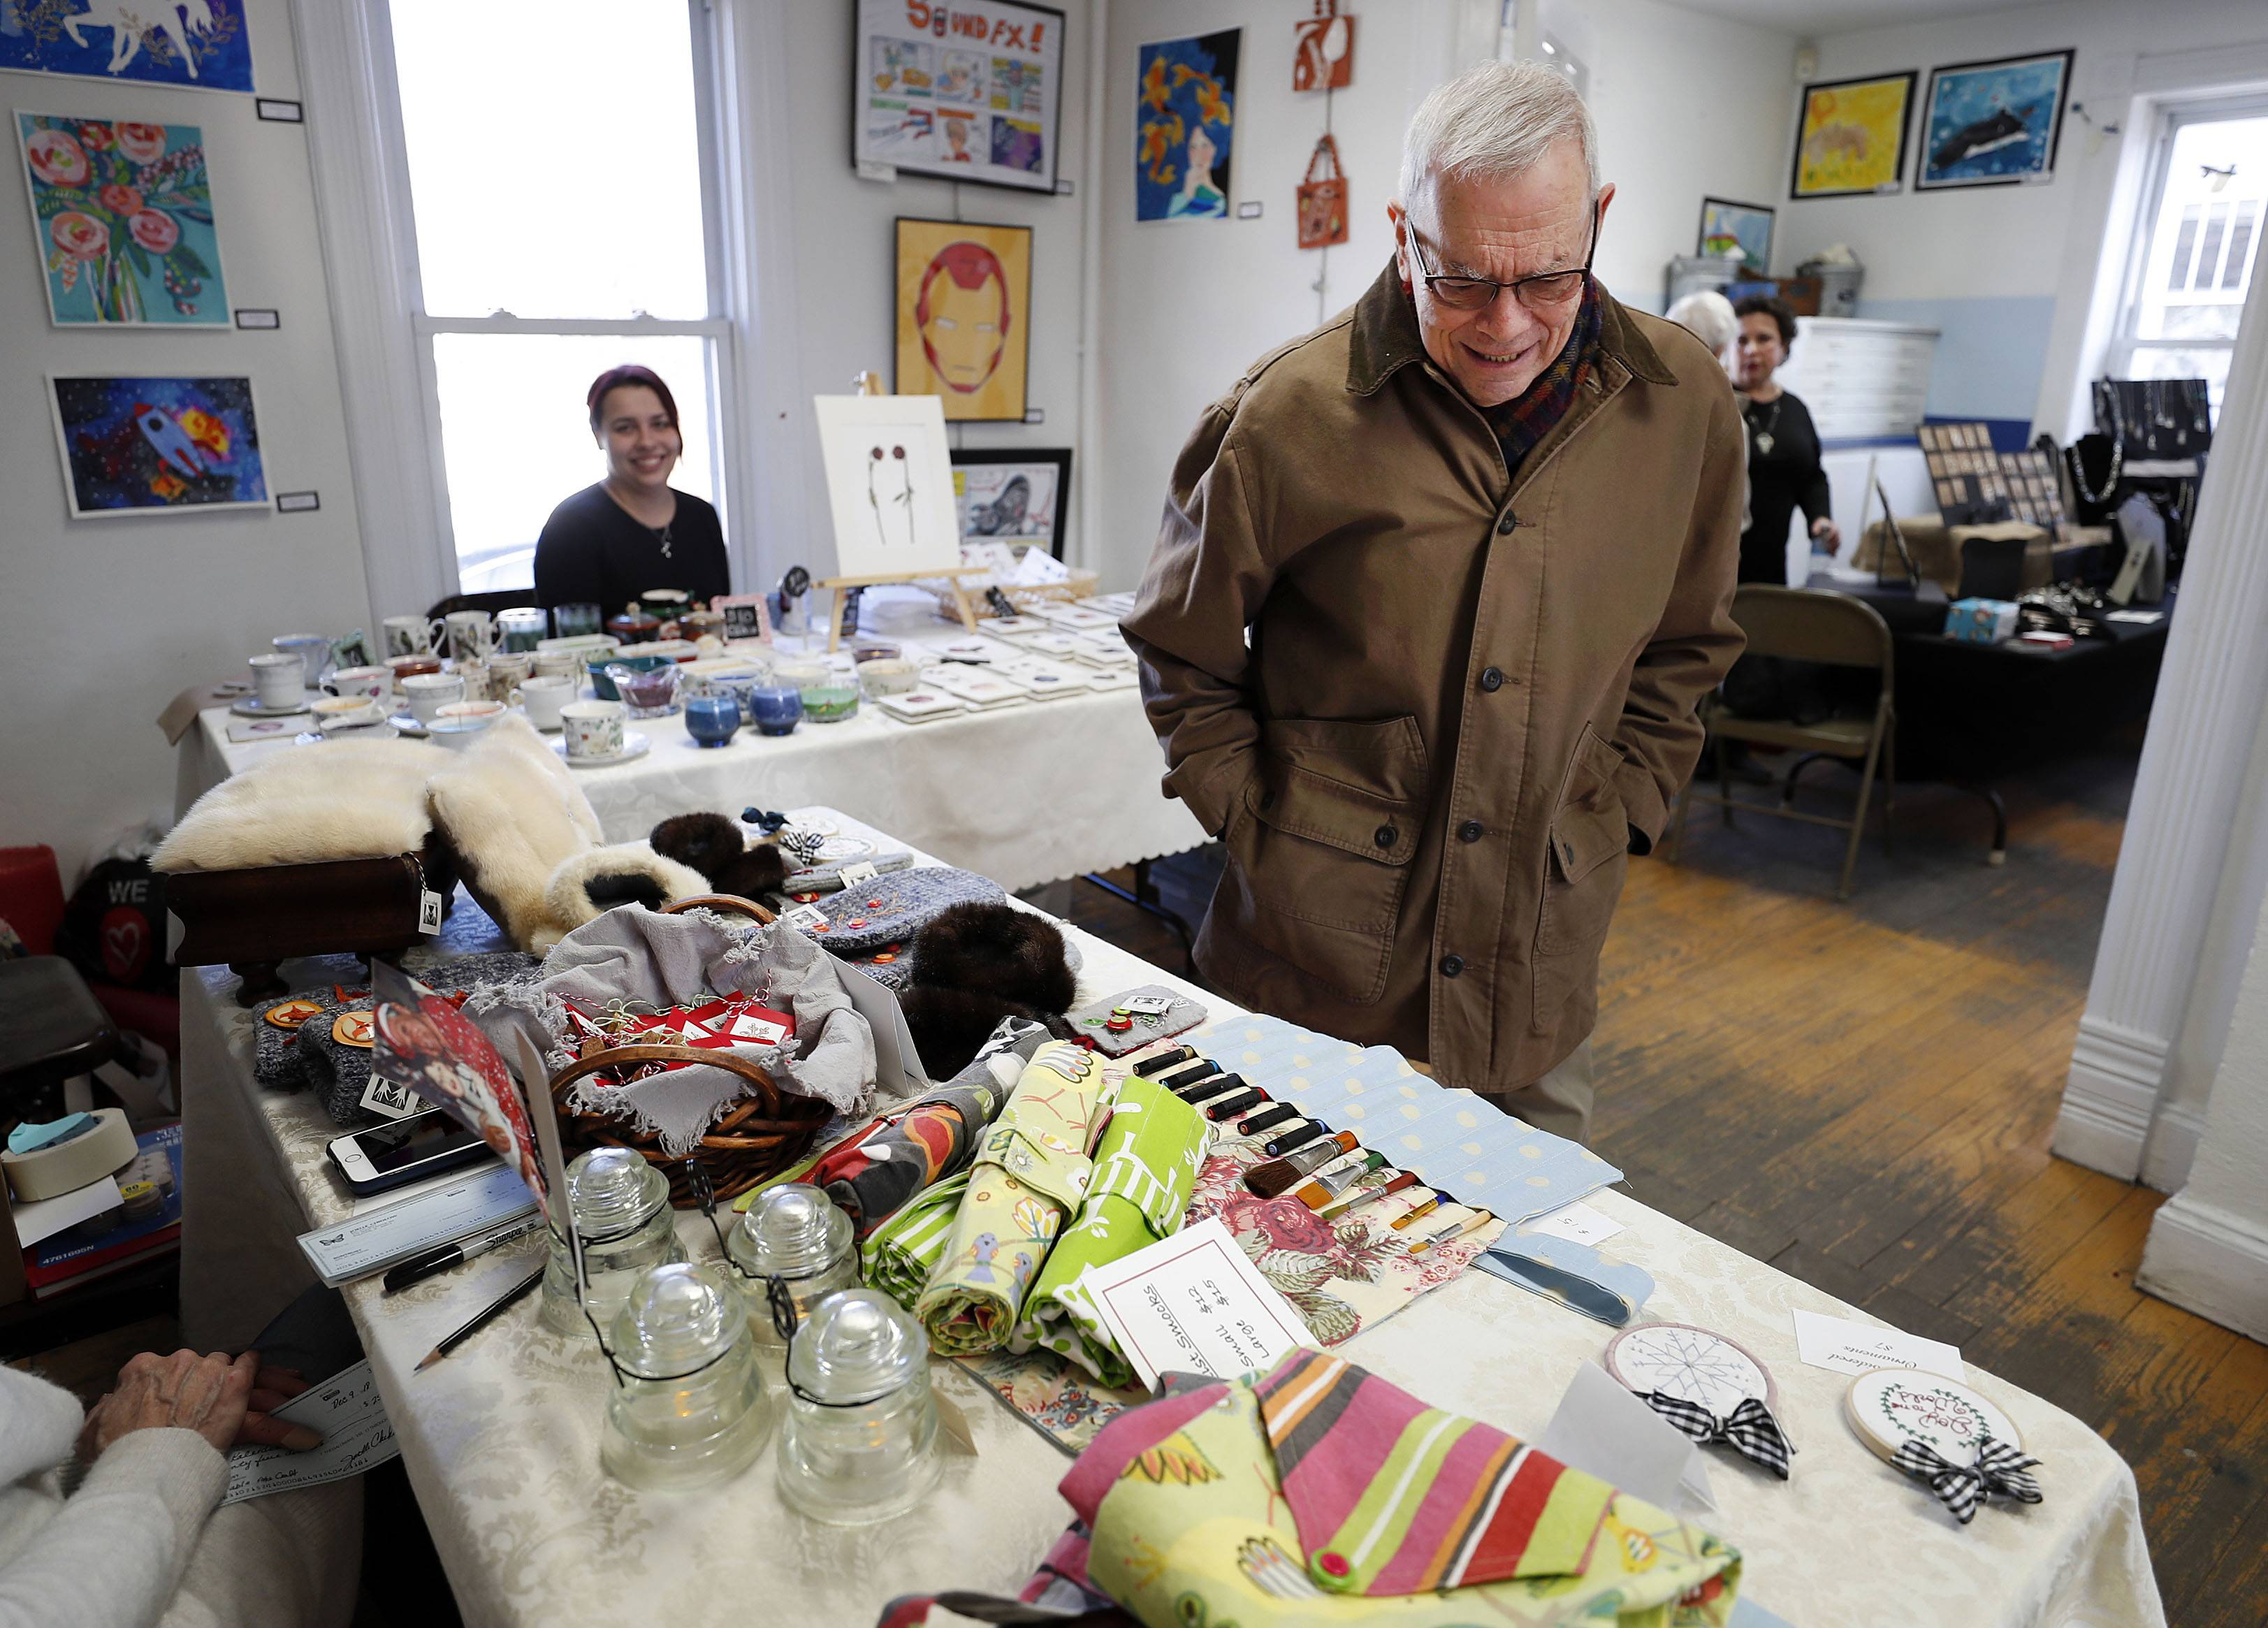 D. Larry Friedman of Buffalo Grove looks over some of the work on display Sunday during an arts and crafts fair at Kaleidoscope School of Fine Art in Barrington.